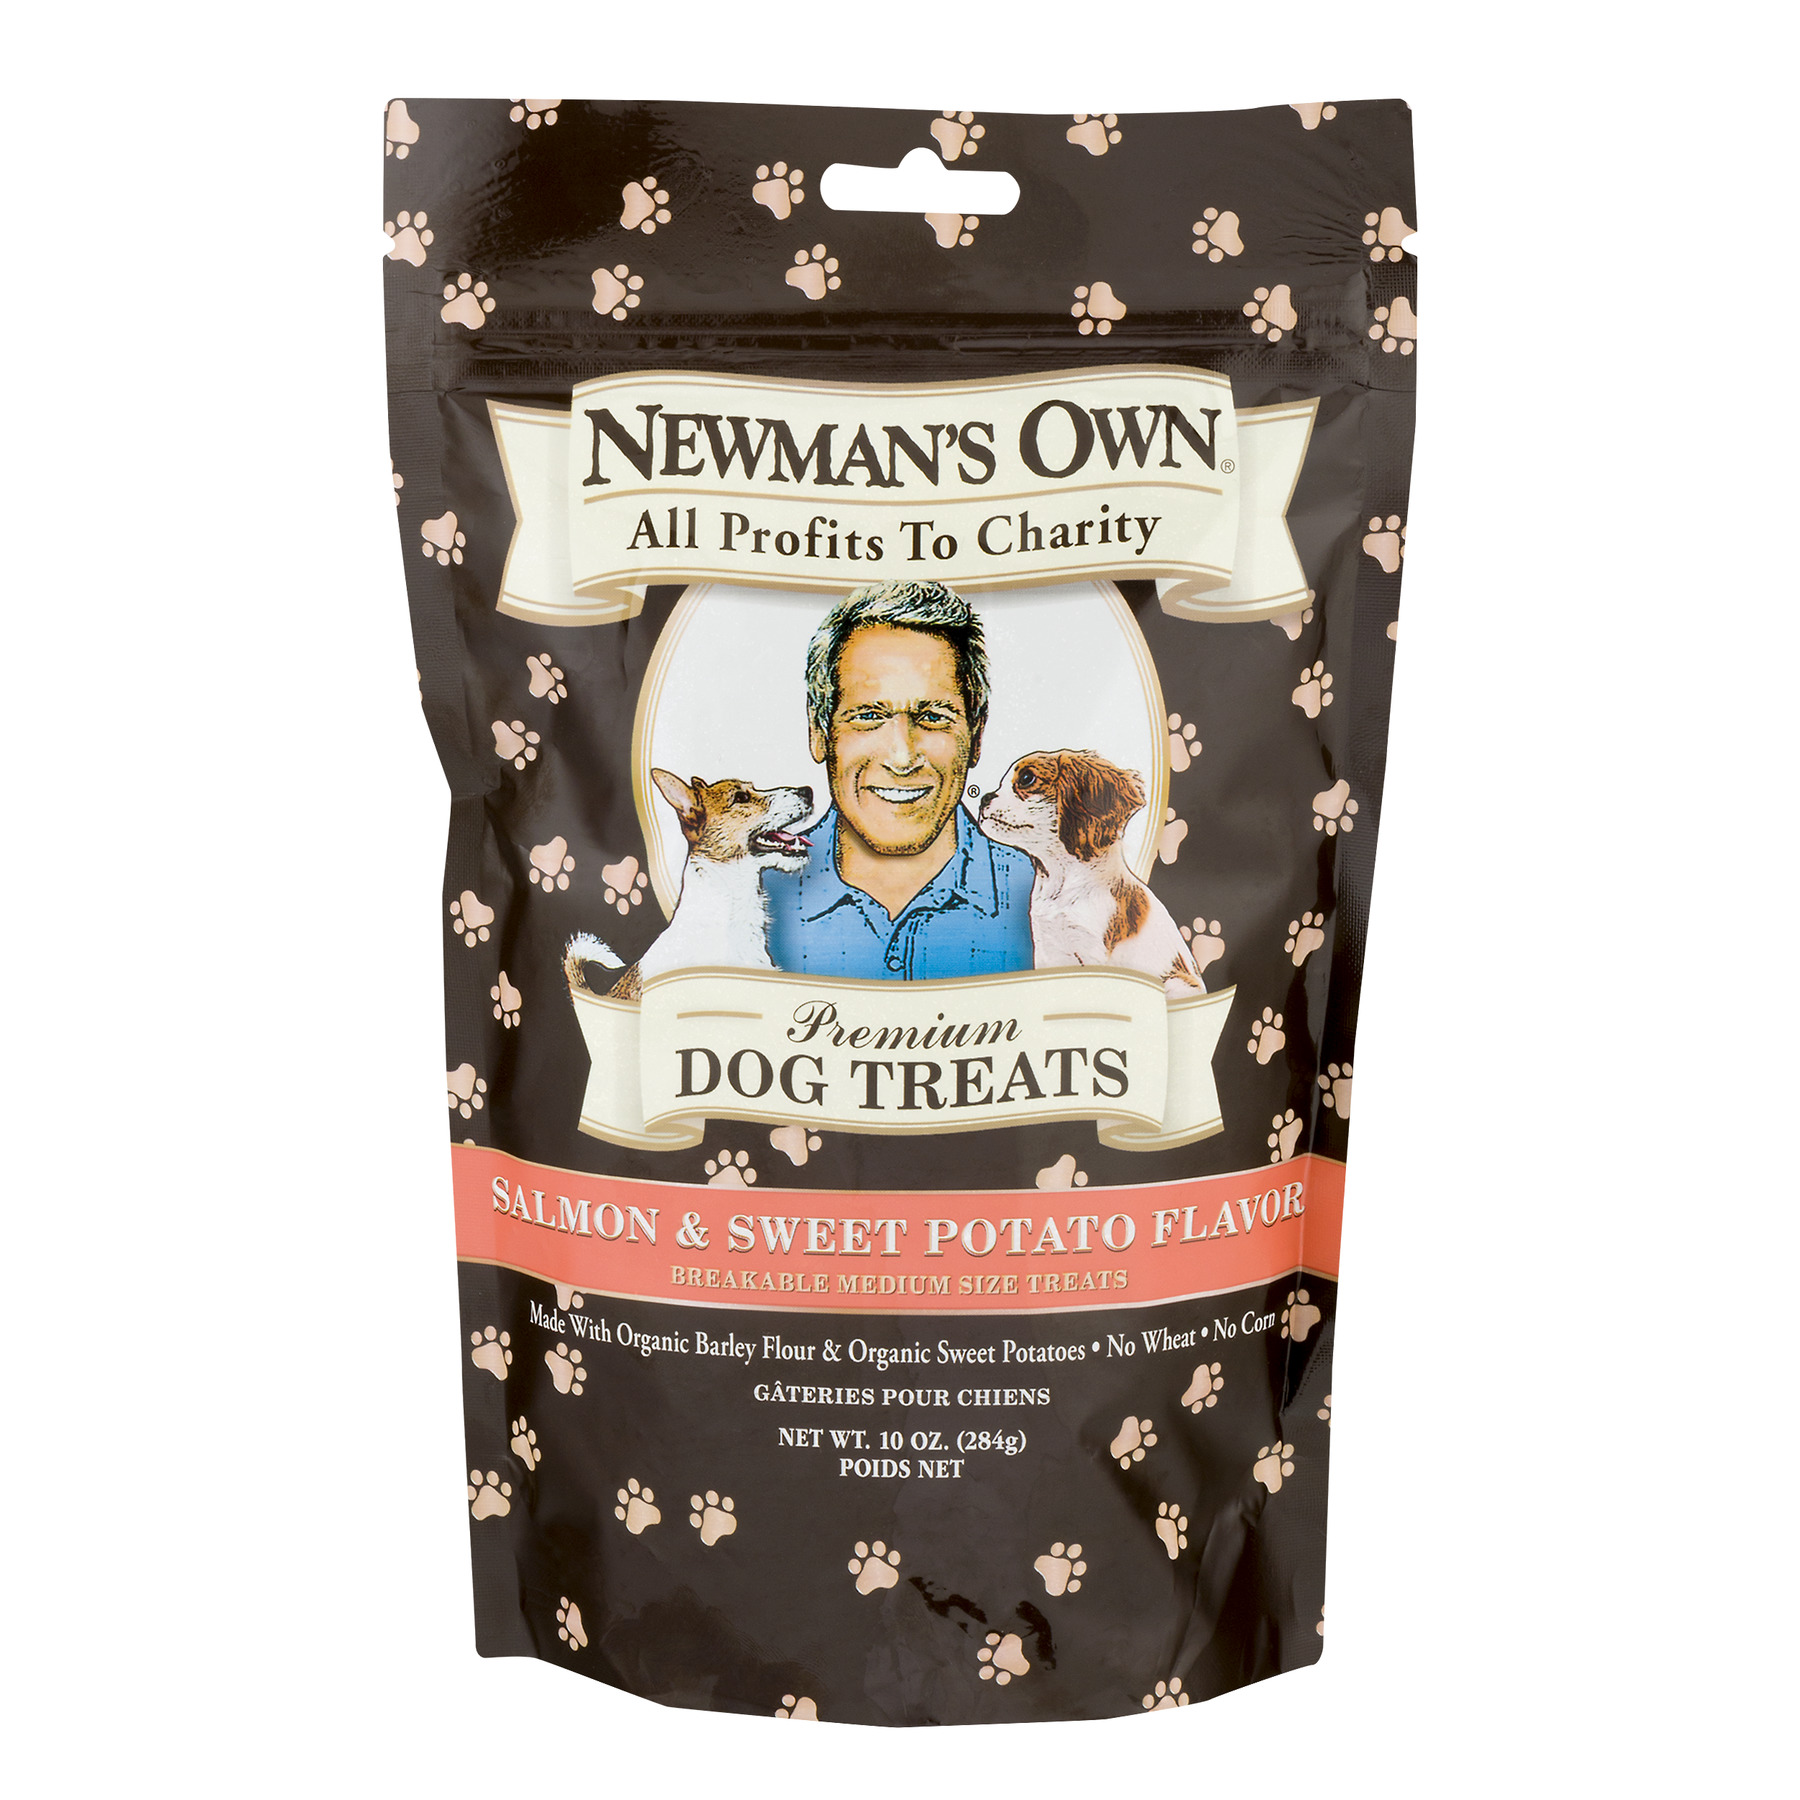 Newmans Own Dog Treats, Premium, Salmon & Sweet Potato